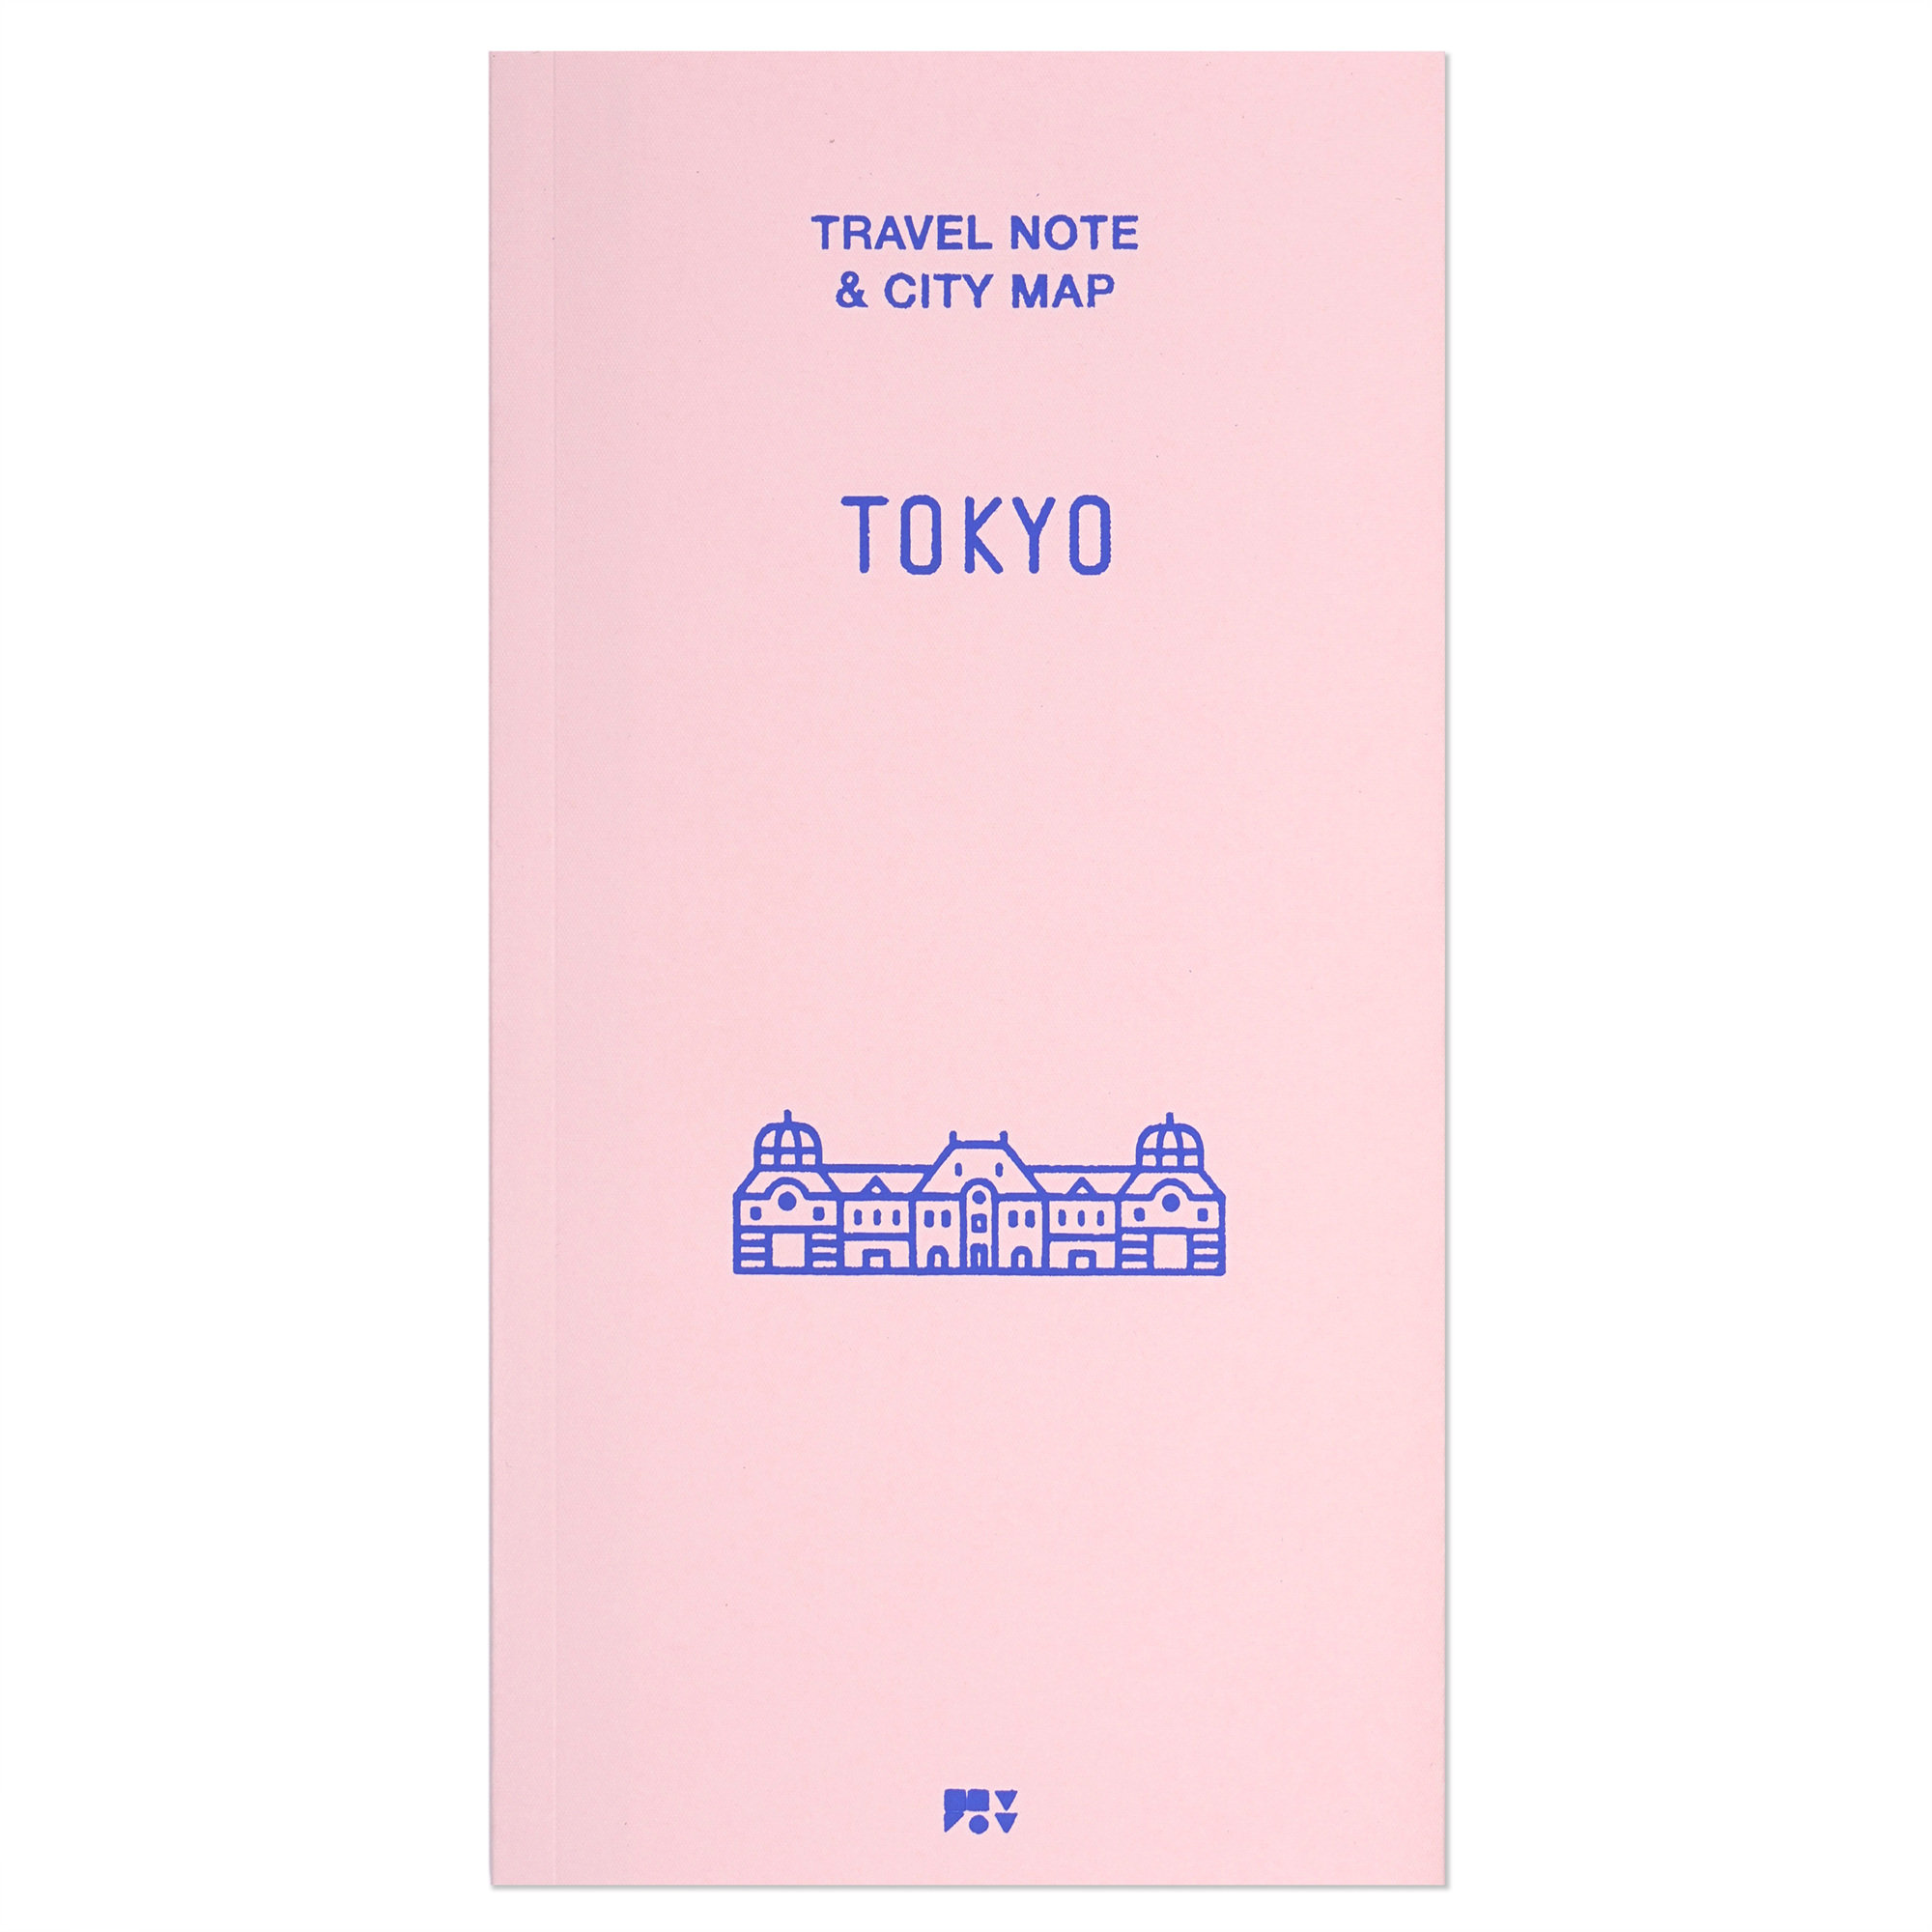 TOKYO | Travel note 2 on physical map of tokyo, subway map of tokyo, climate map of tokyo, clear map of tokyo, blank map japan, rail map of tokyo, satellite map of tokyo, political map of tokyo, topographical map of tokyo,